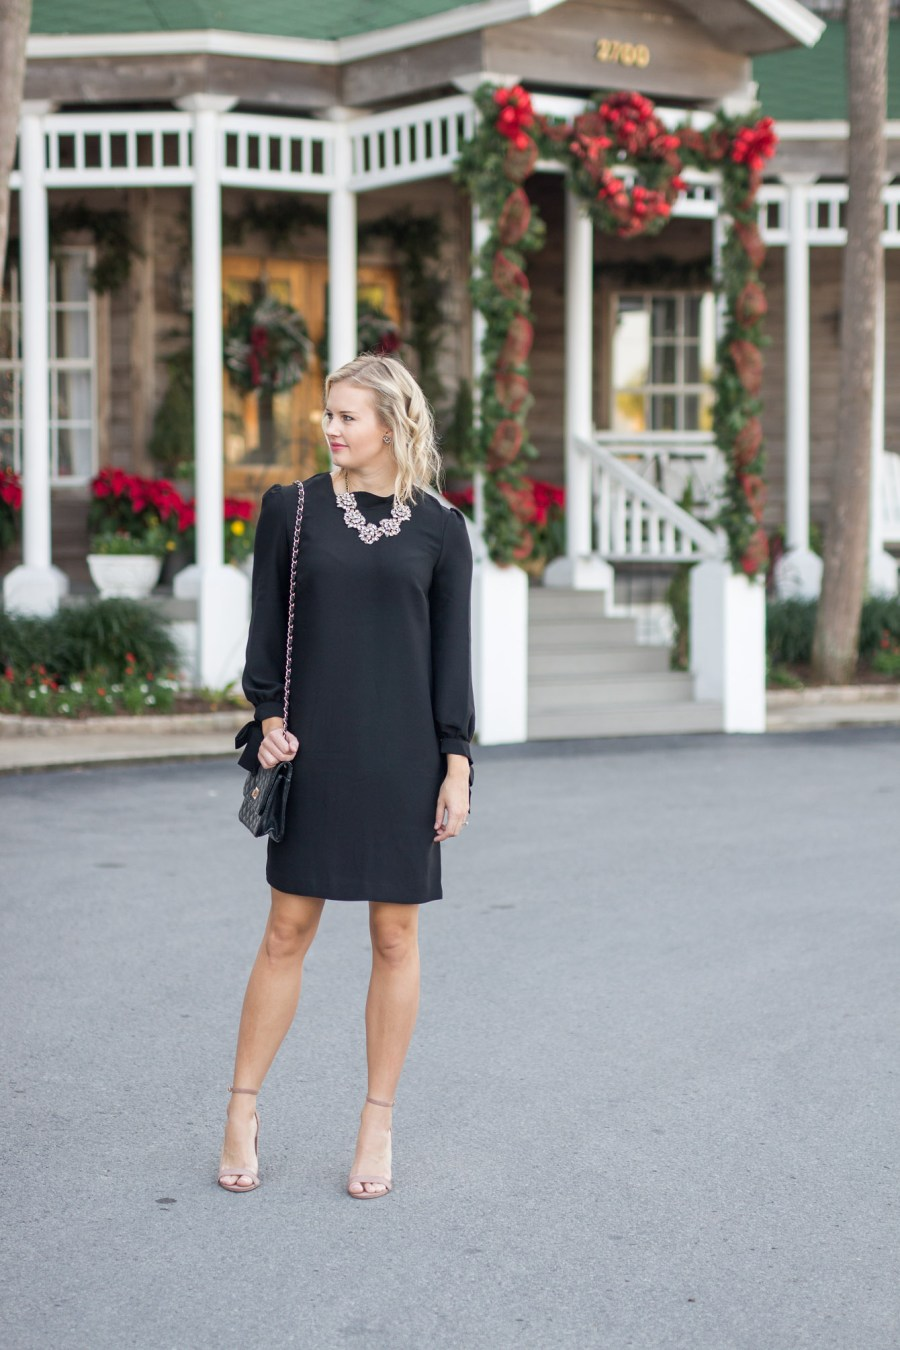 Banana Republic little black dress for holiday parties